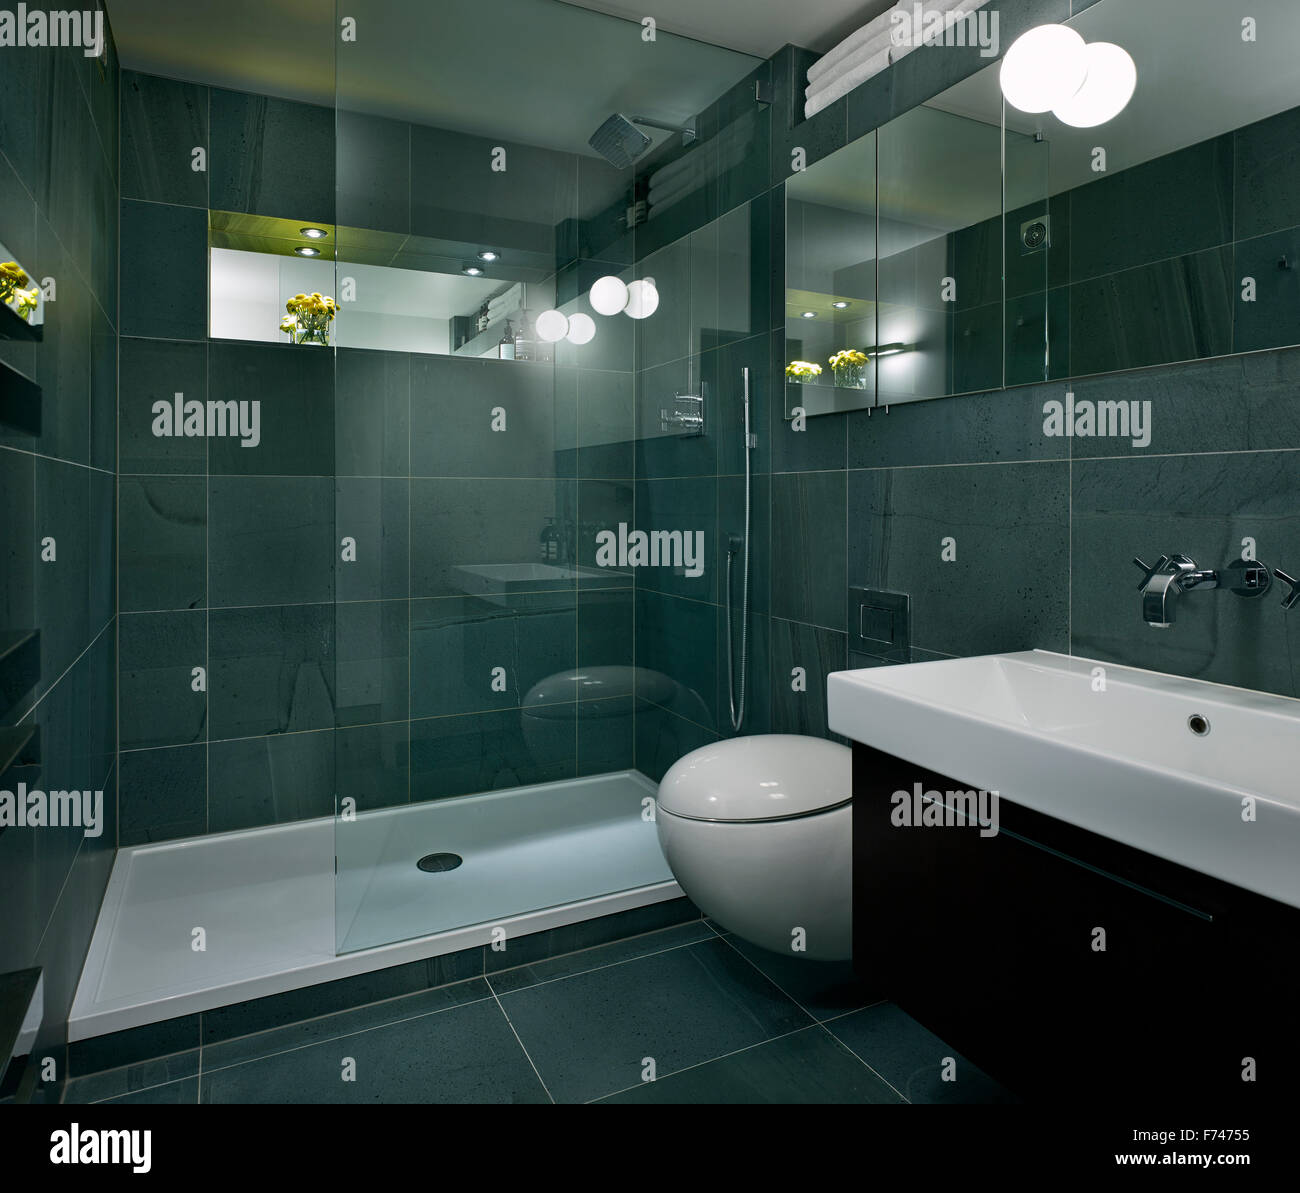 Tiled wetroom in Compass Court Apartment, Shad Thames, London, England, UK - Stock Image